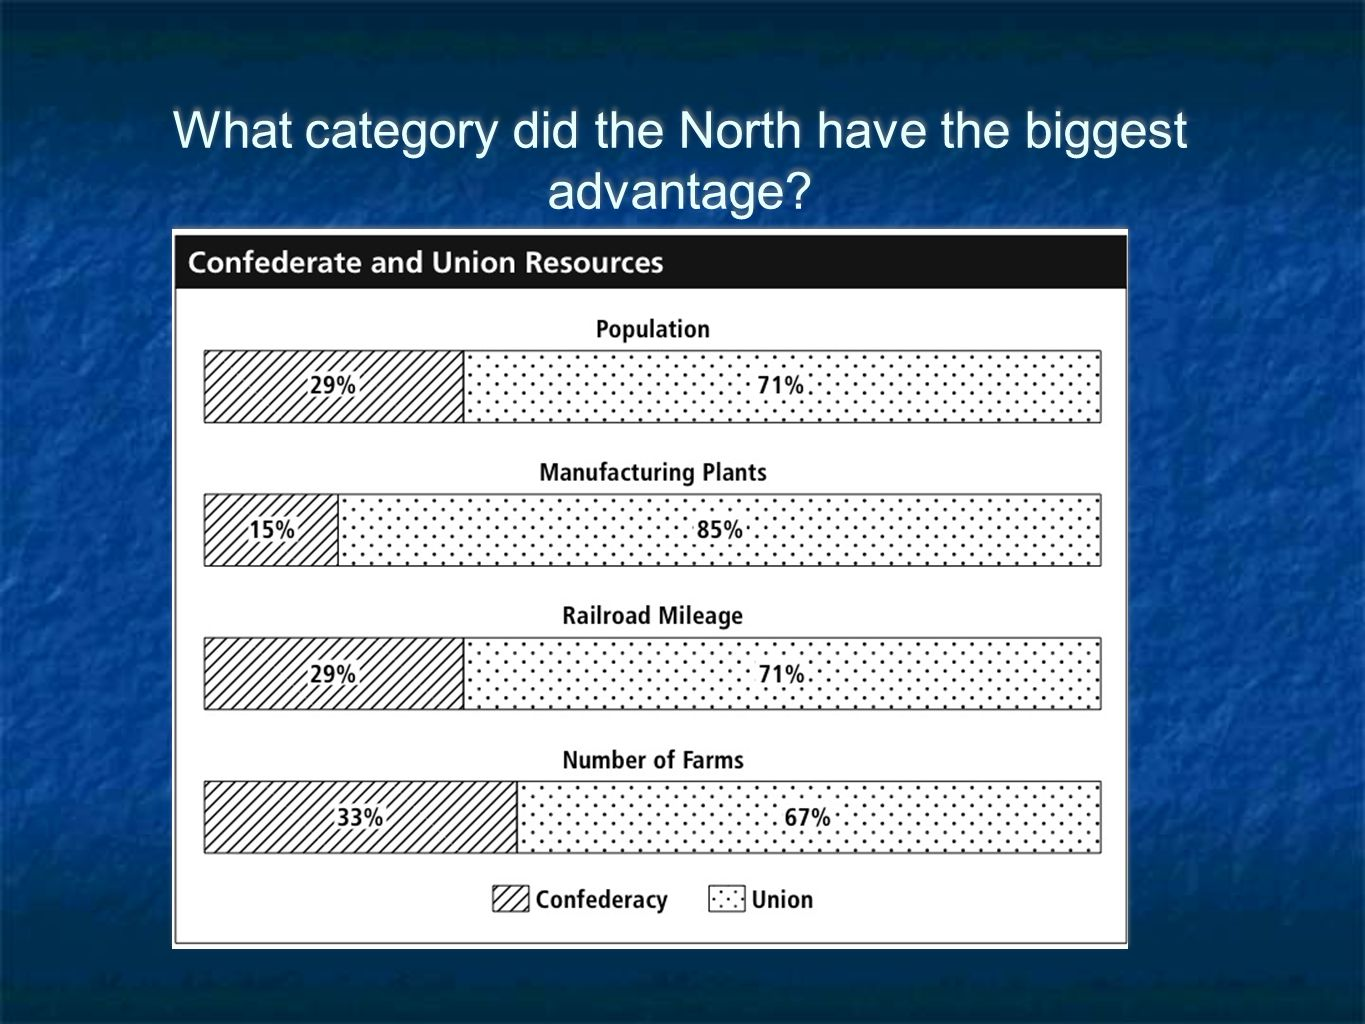 What category did the North have the biggest advantage